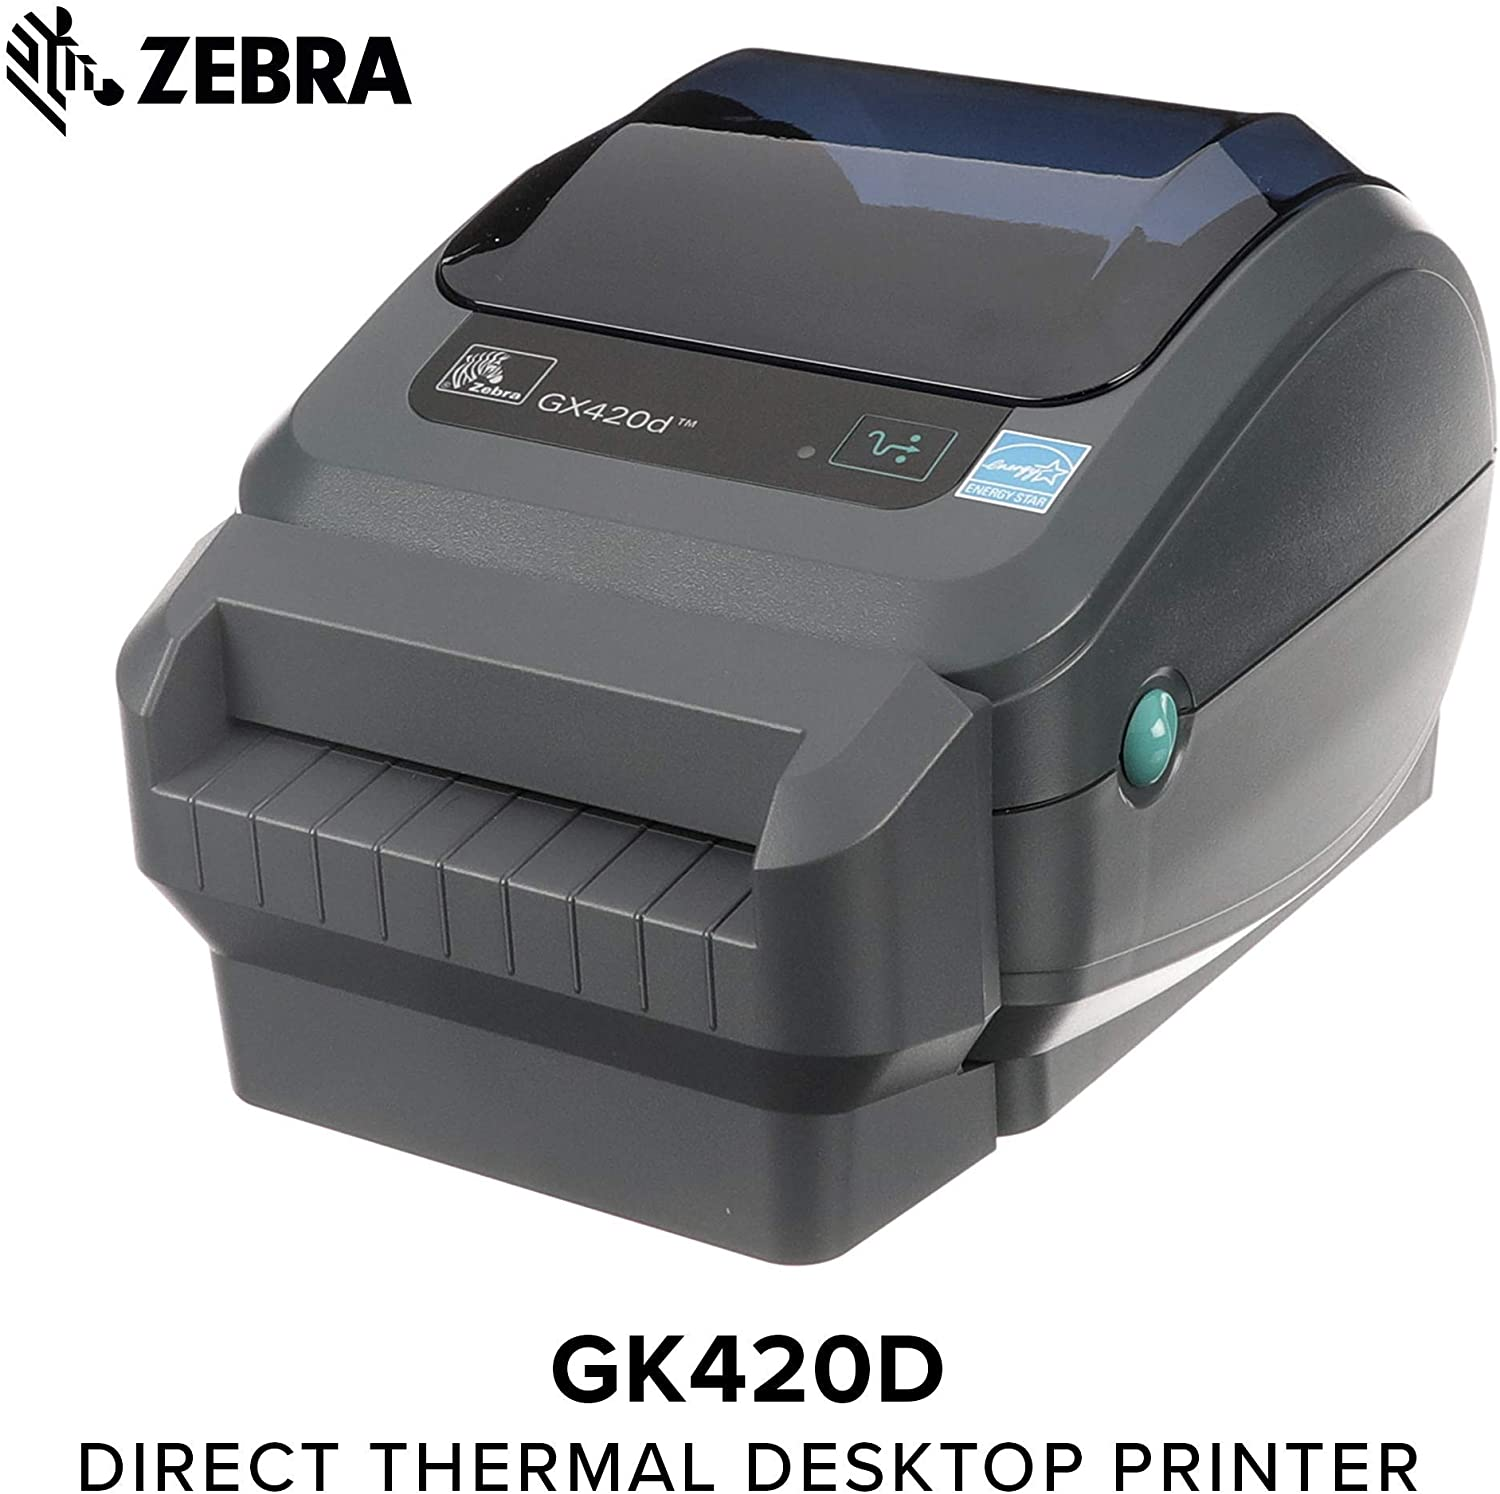 Zebra - GX420d Direct Thermal Desktop Printer for Labels, Receipts, Barcodes, Tags, and Wrist Bands - Print Width of 4 in - USB, Serial, and Ethernet Port Connectivity (Includes Cutter) (Renewed)